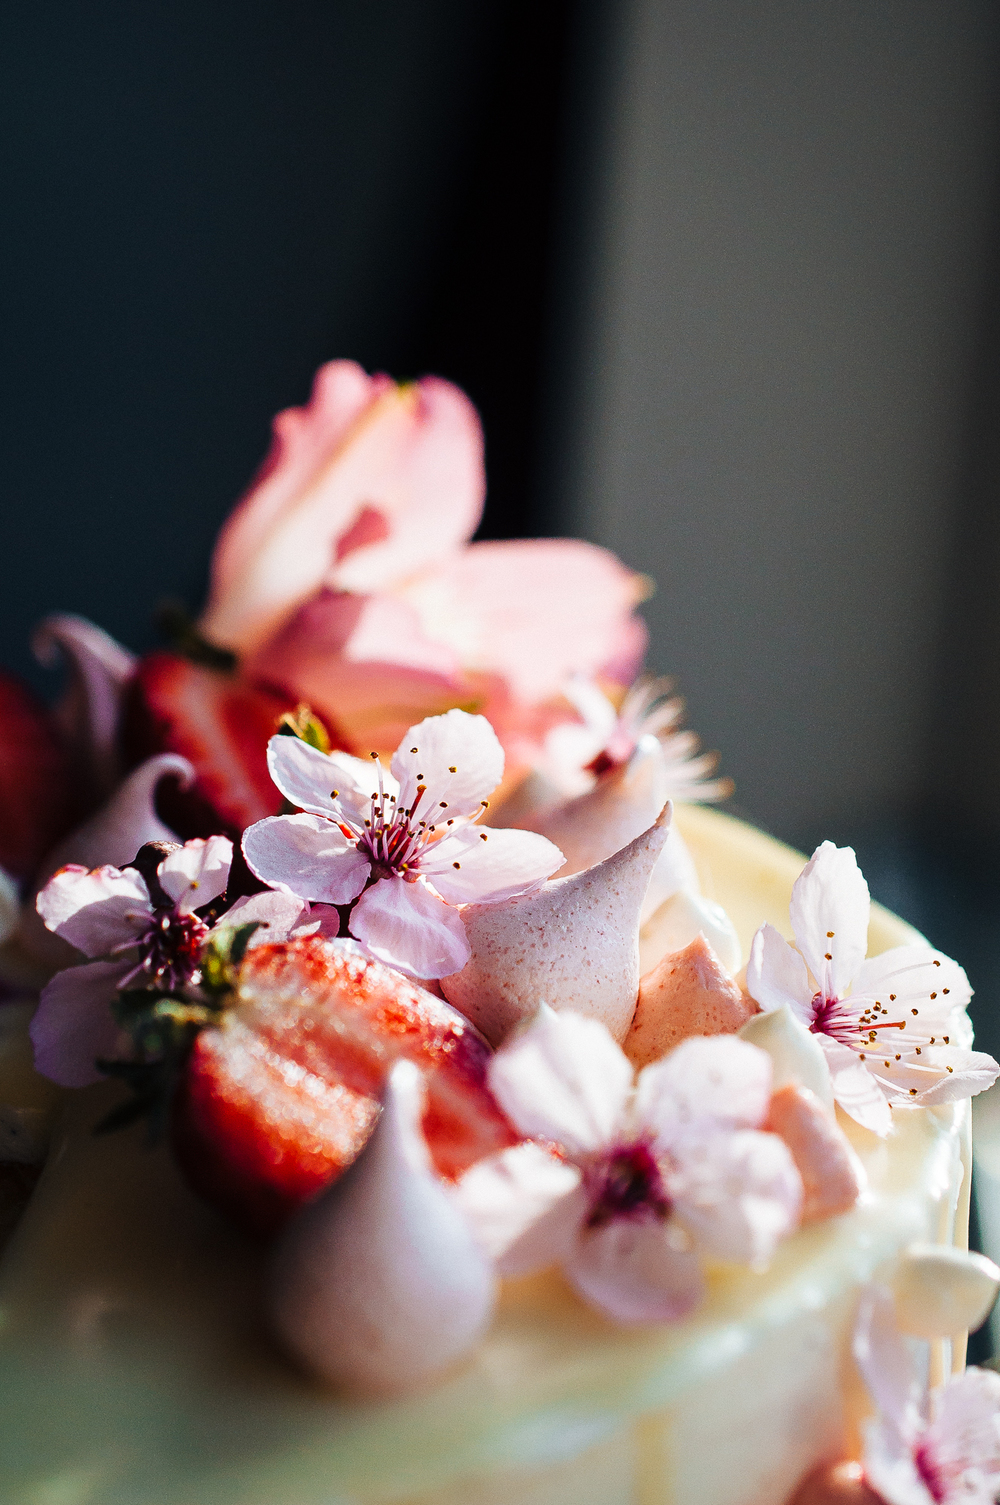 Strawberry and vanilla cake 25.jpg